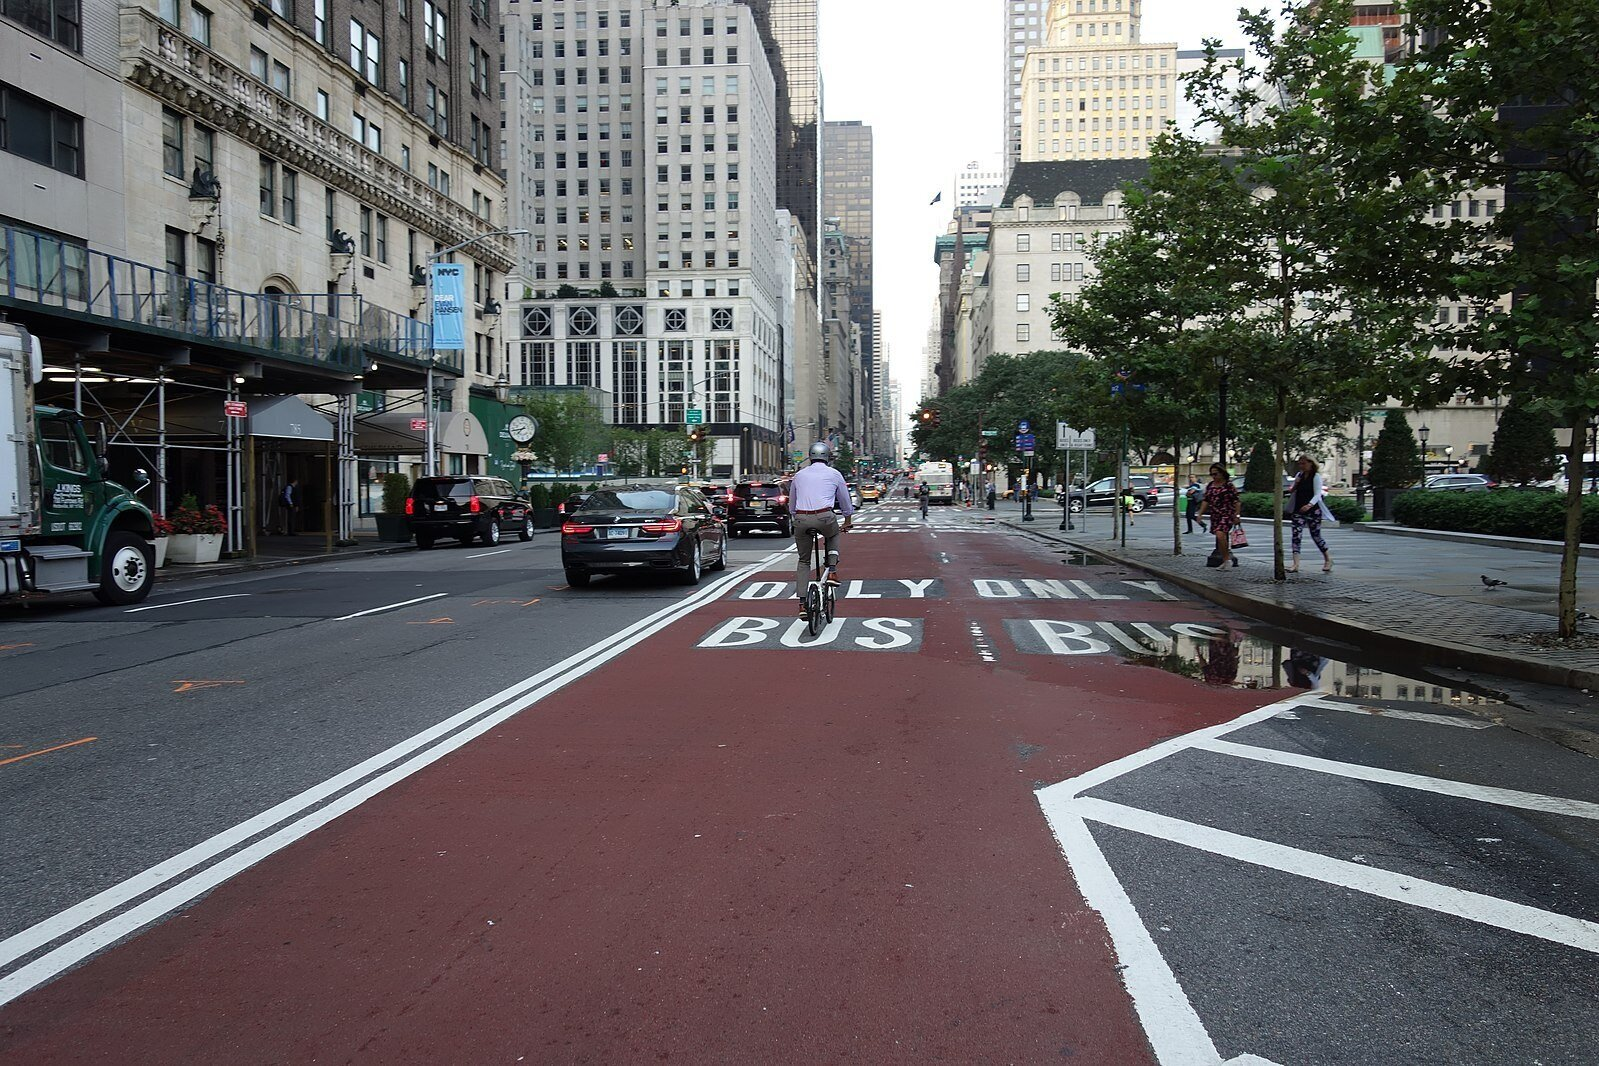 A double bus lane on 5th Ave. at 60th Street in New York. 📸:  Wikimedia